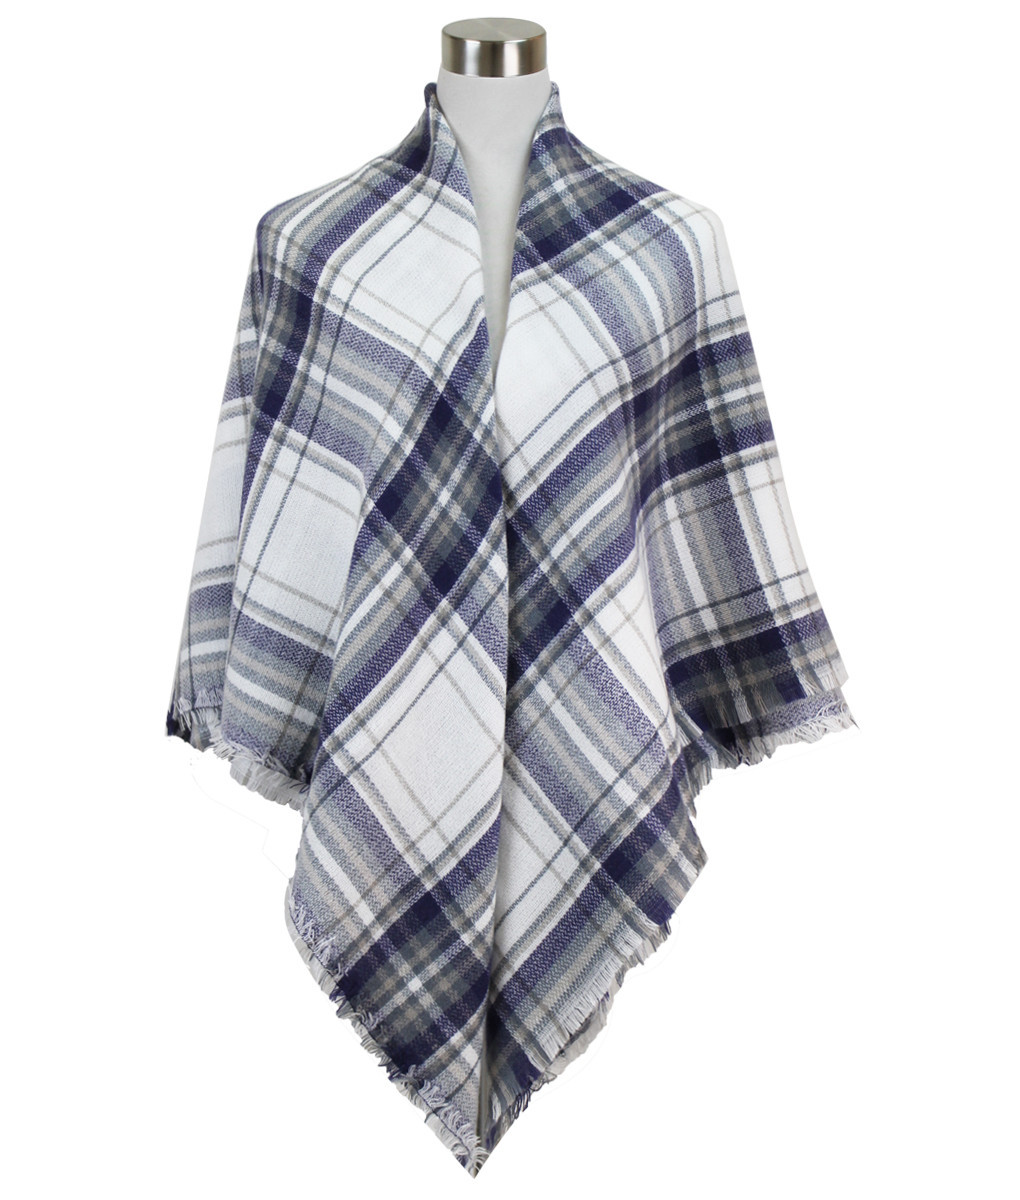 Soft Plaid Blanket Scarf